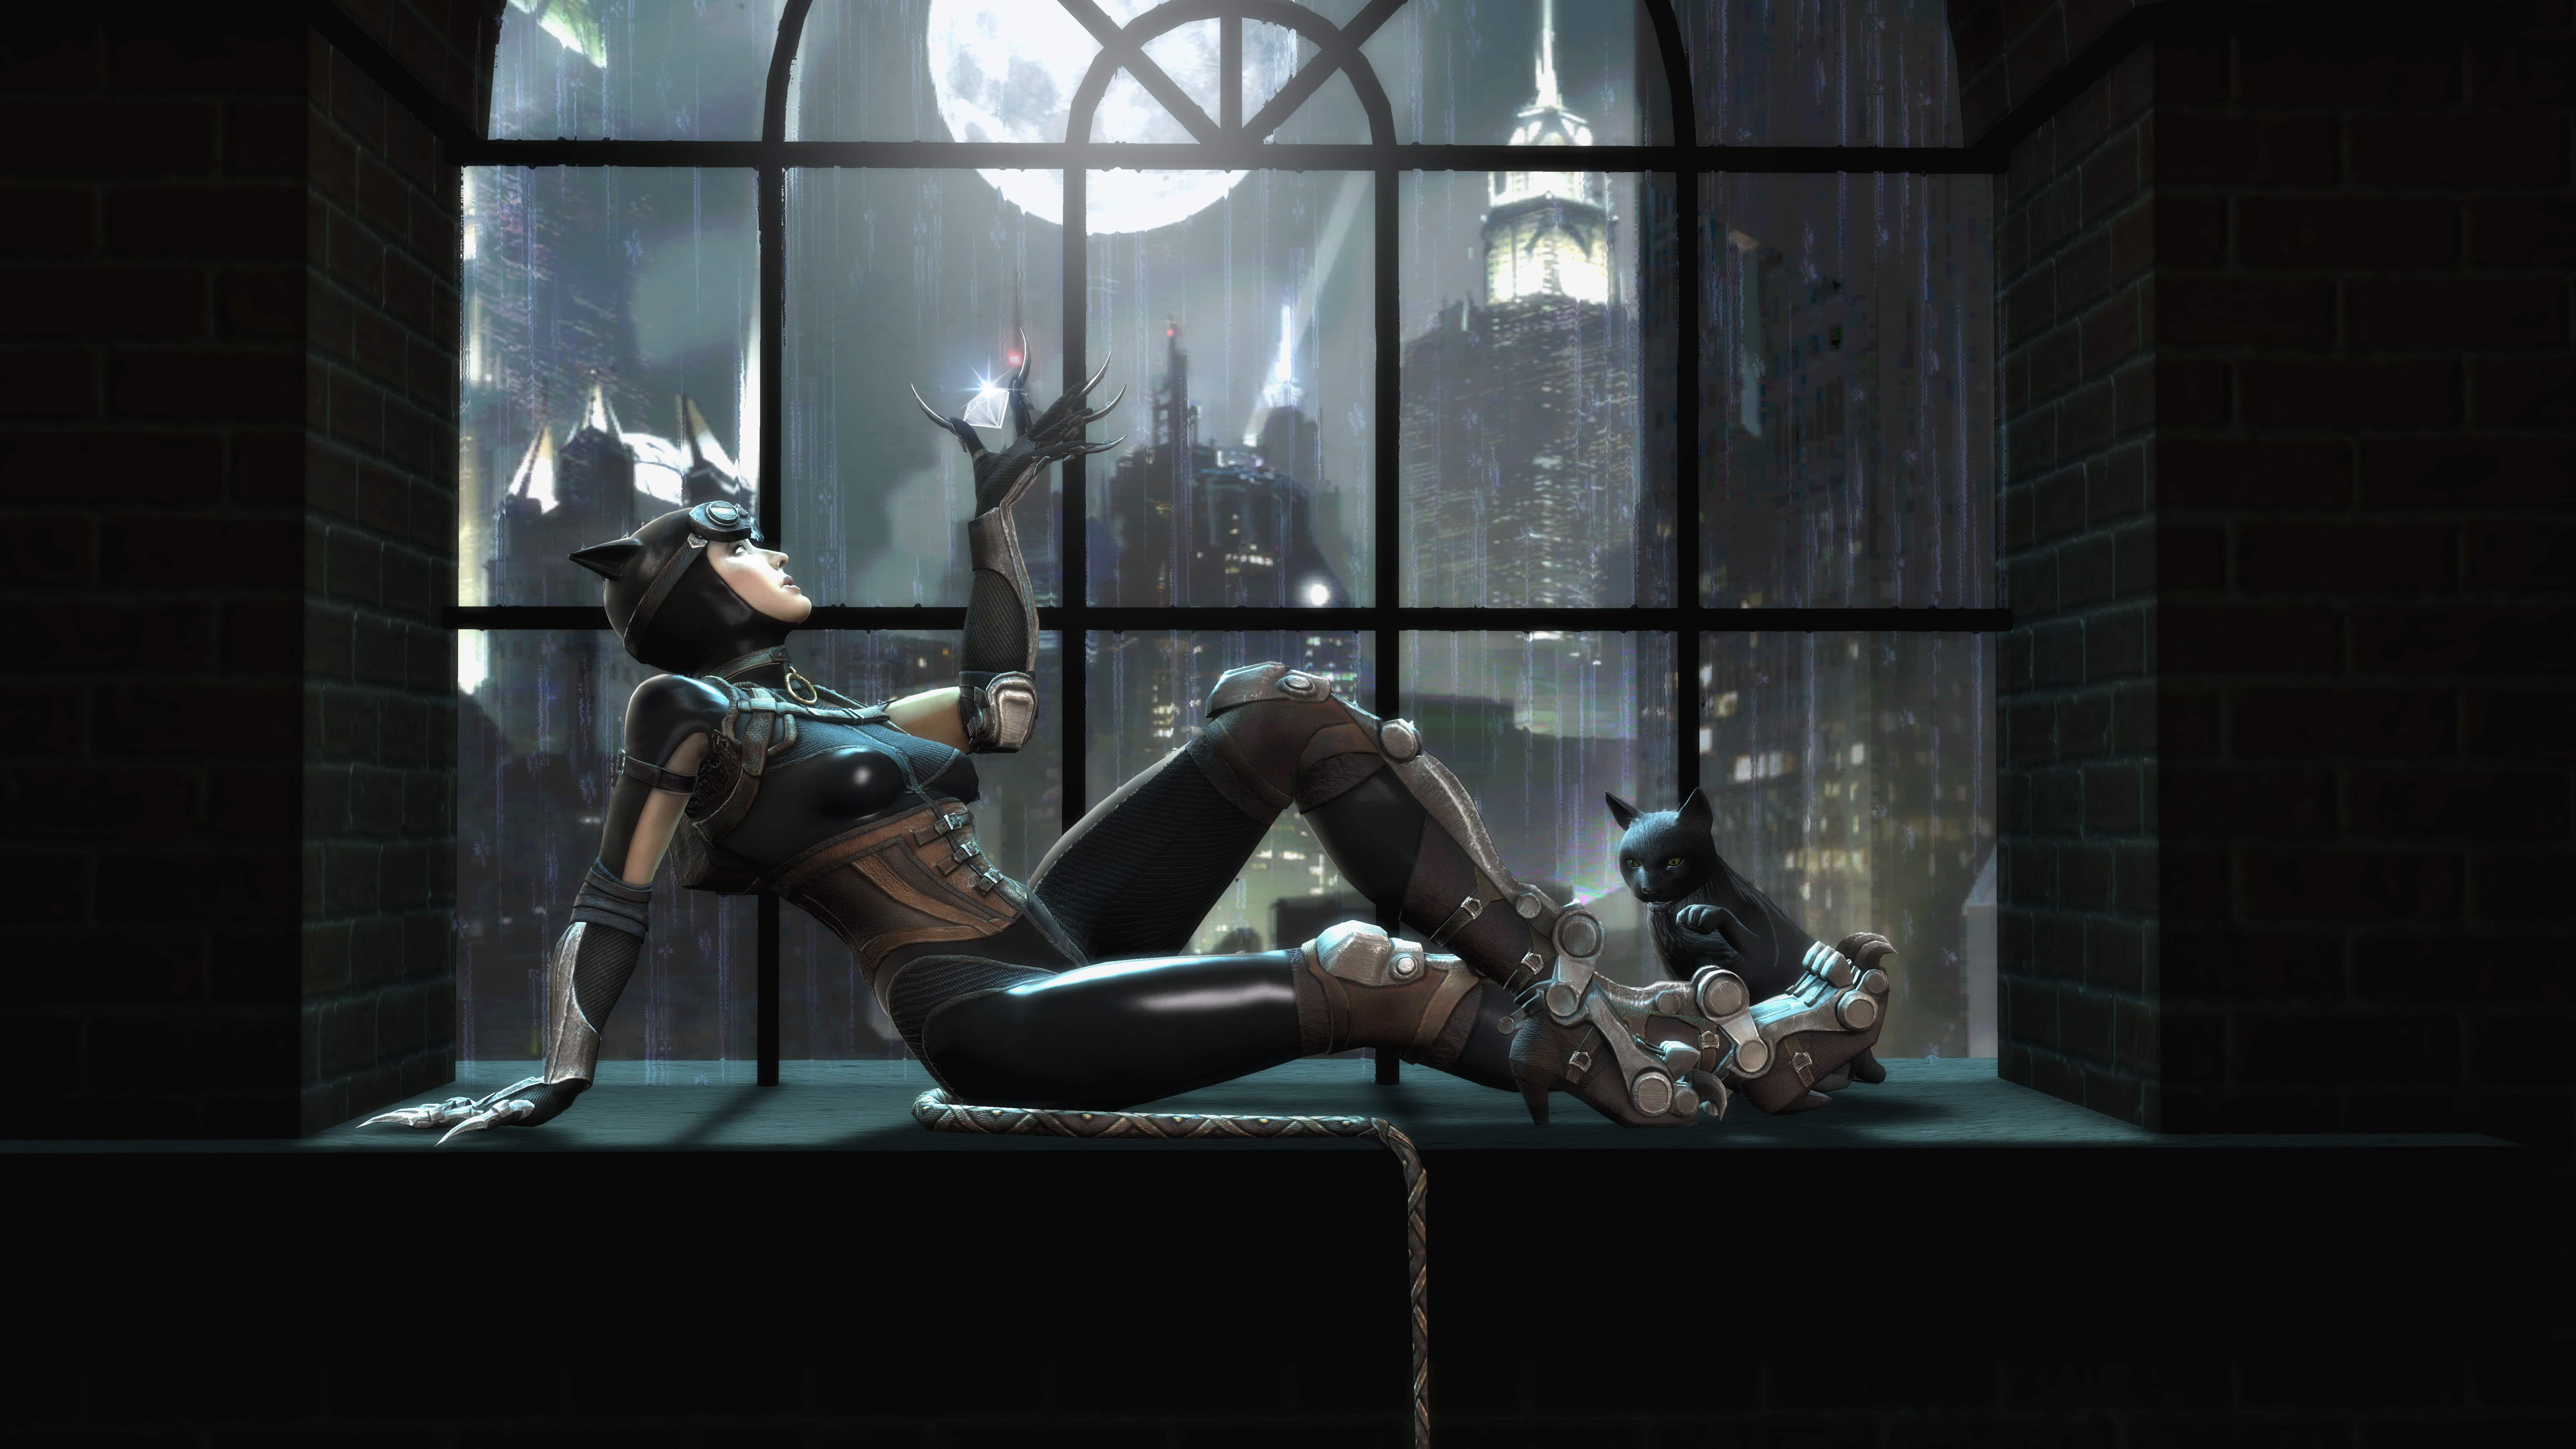 Catwoman by a window